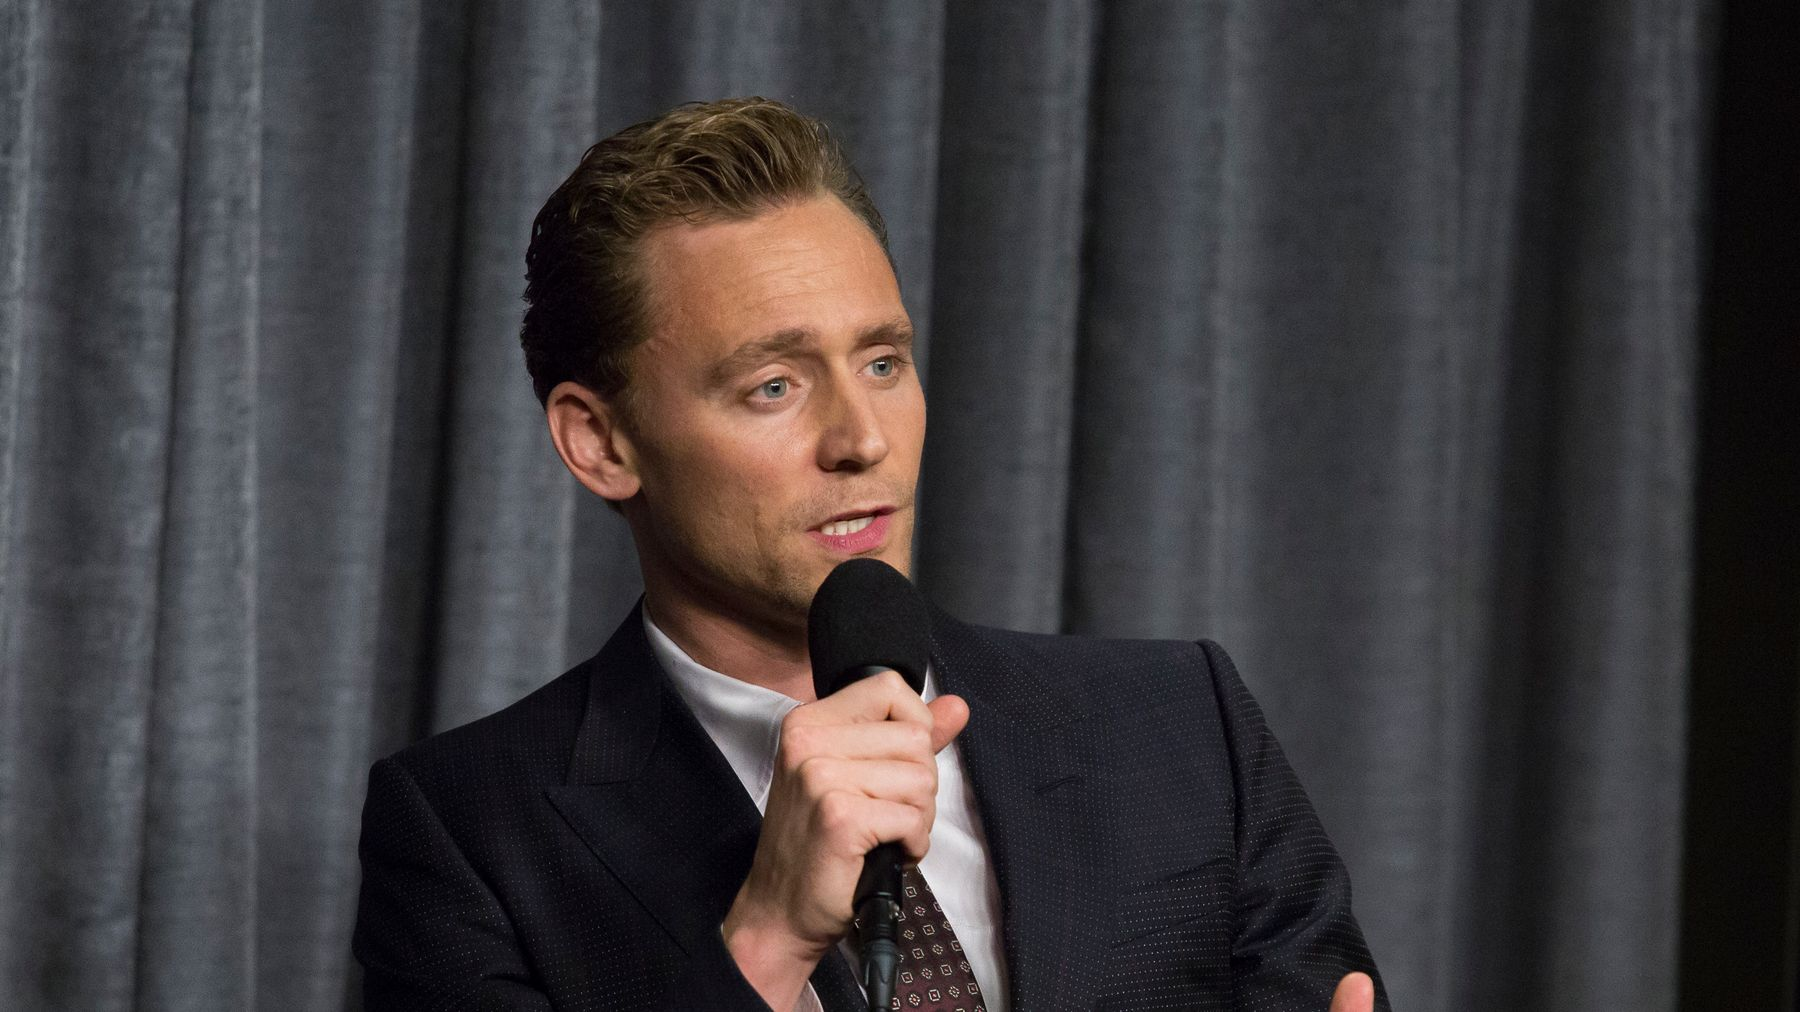 Tom Hiddleston Reveals What It's Like To Date Taylor Swift